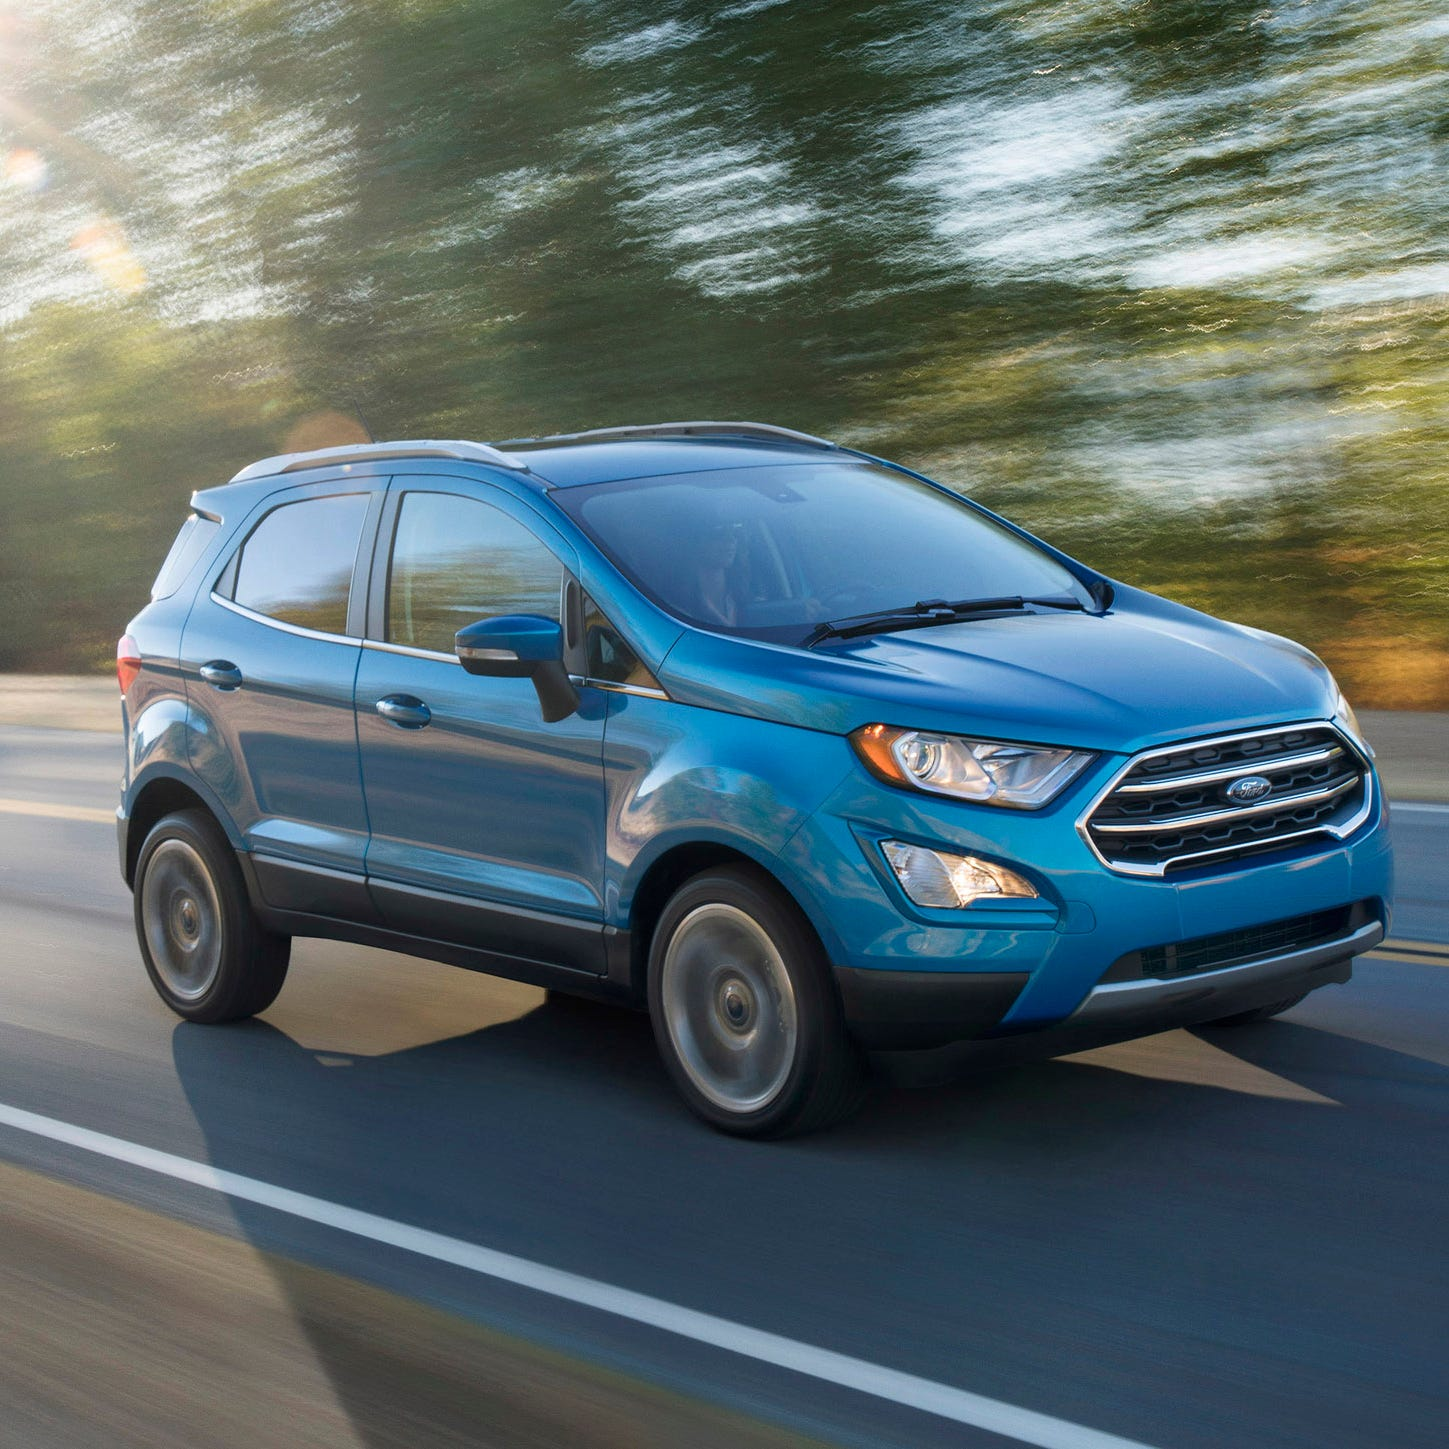 Don't tell anyone I like the Ford EcoSport